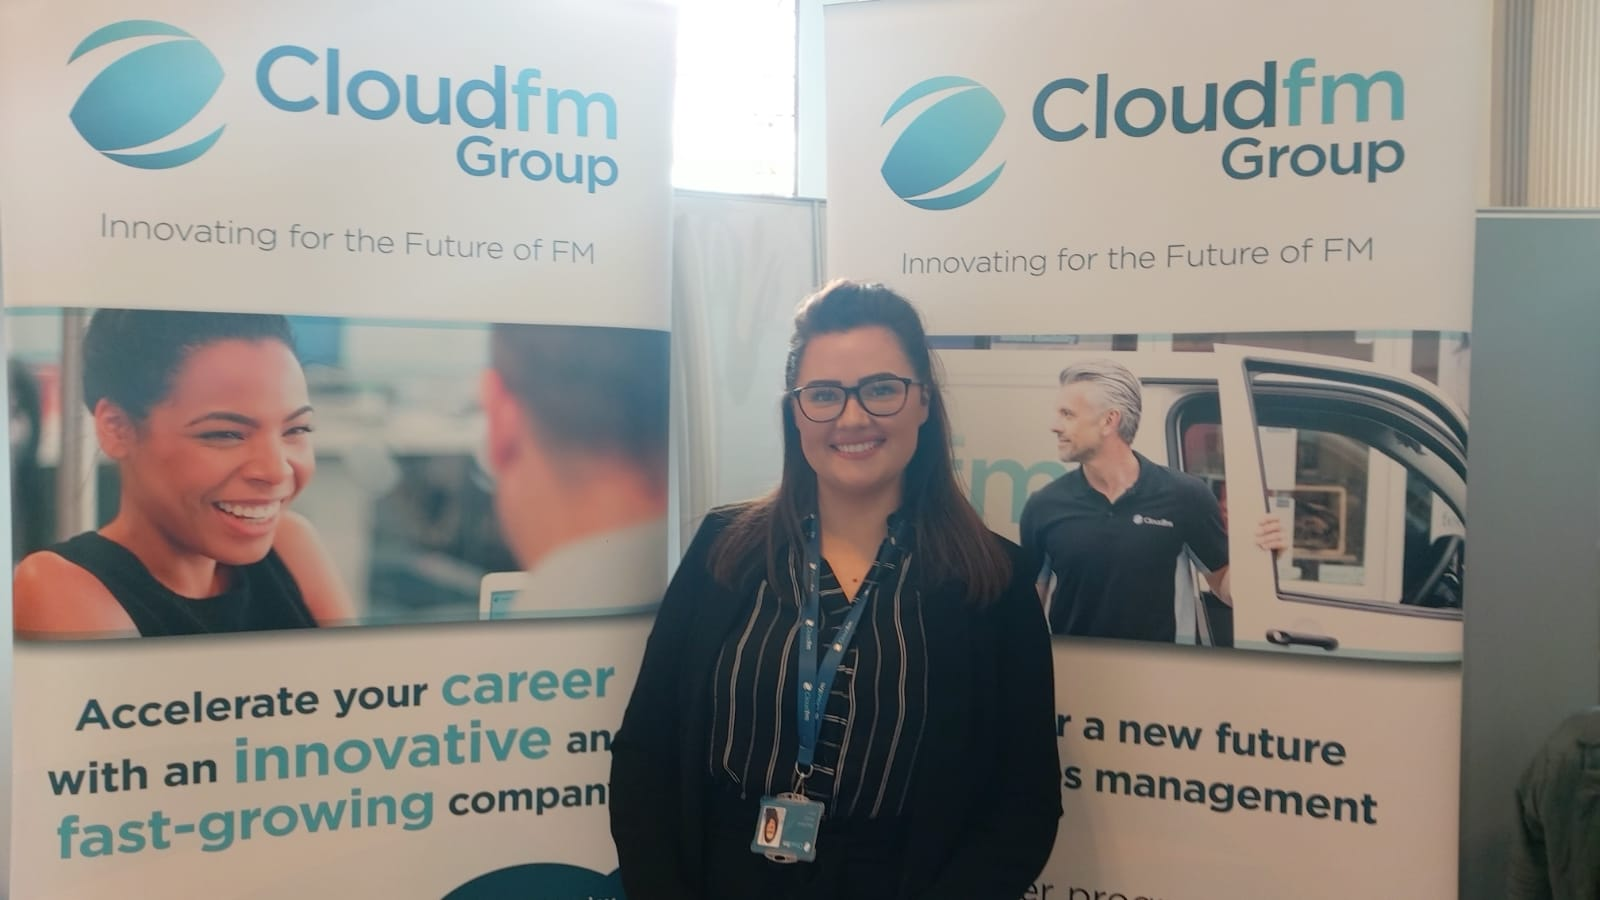 Cloudfm Group